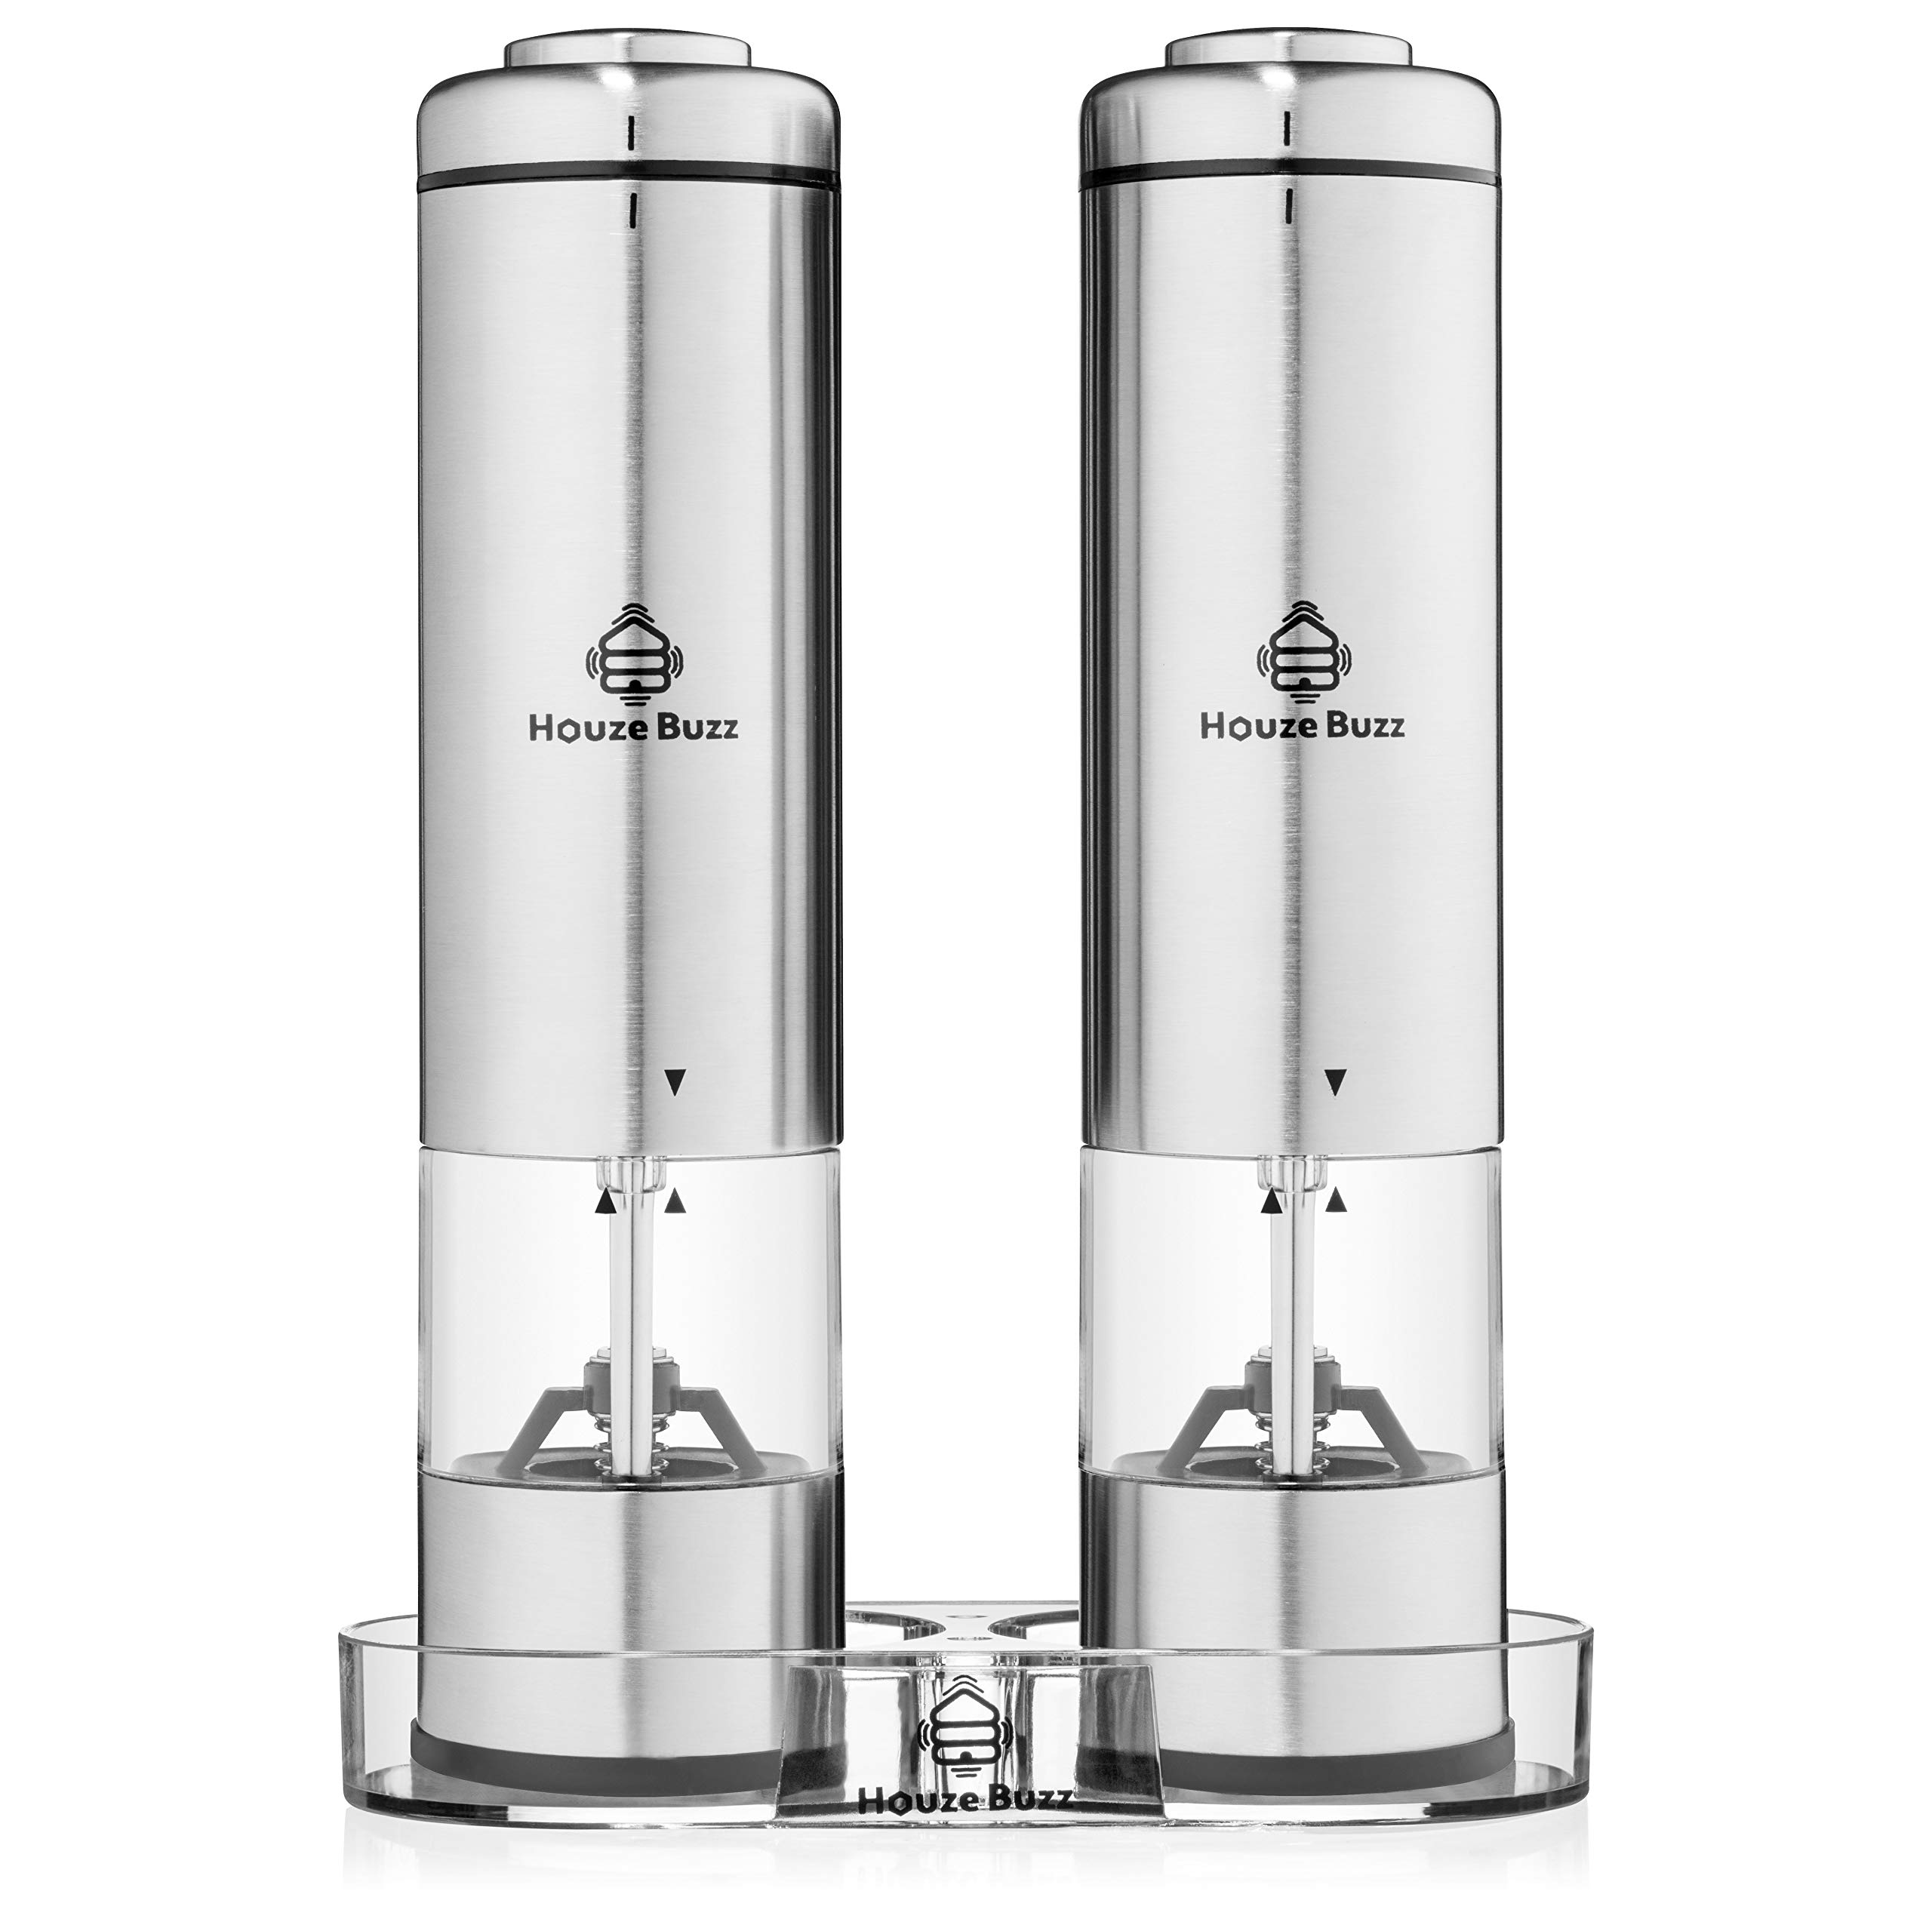 Stainless Steel Salt and Pepper Grinder Set by Houze Buzz - Mill Holder - Battery Operated -LED Light with Adjustable Coarseness and One Touch Push Button Operation by Houze Buzz